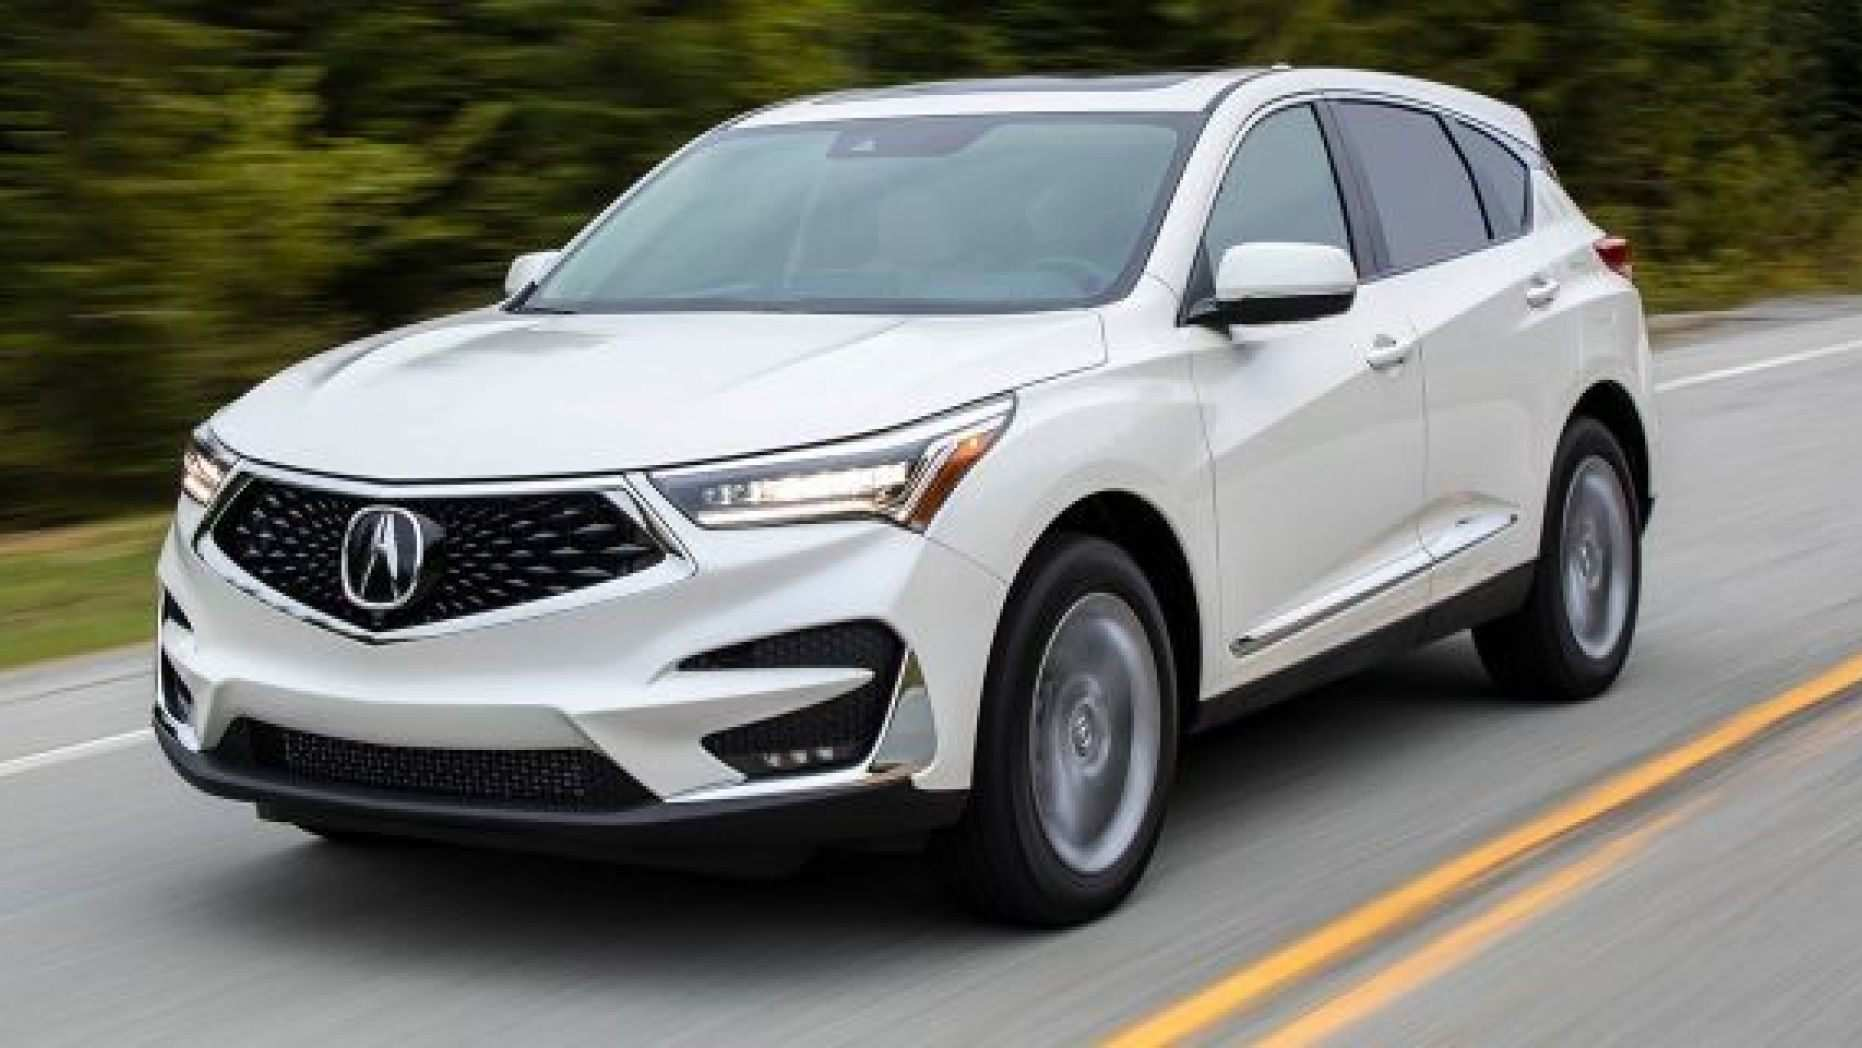 15 New 2019 Acura Rdx Hybrid Model by 2019 Acura Rdx Hybrid